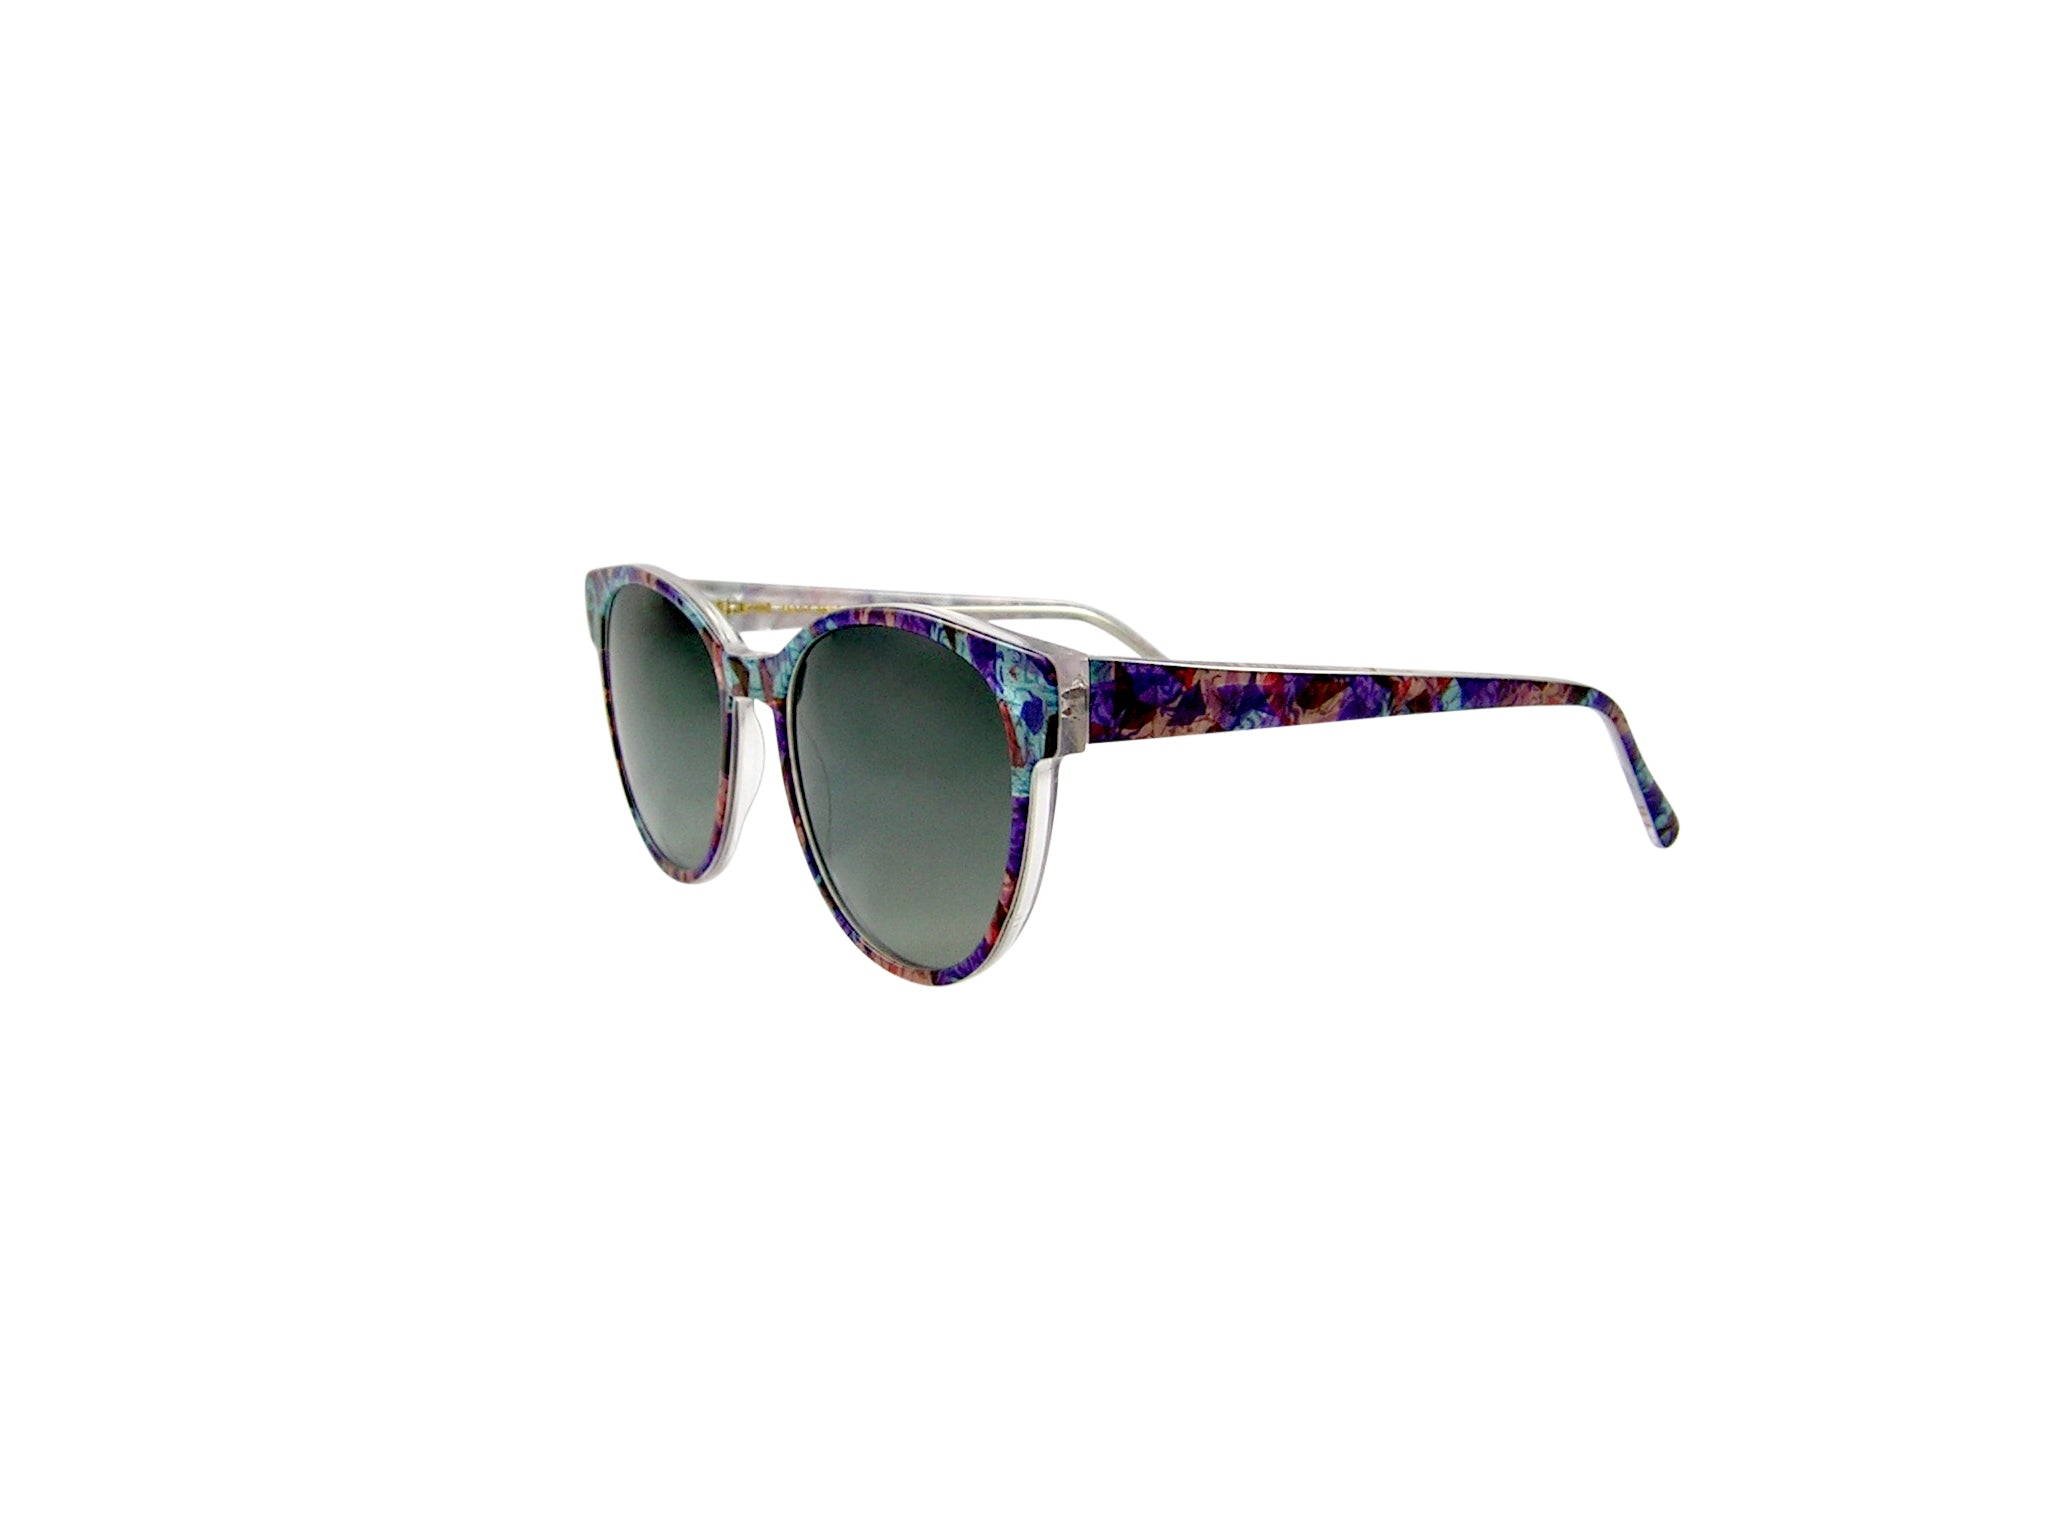 US REVISION Sunglasses RVS 503